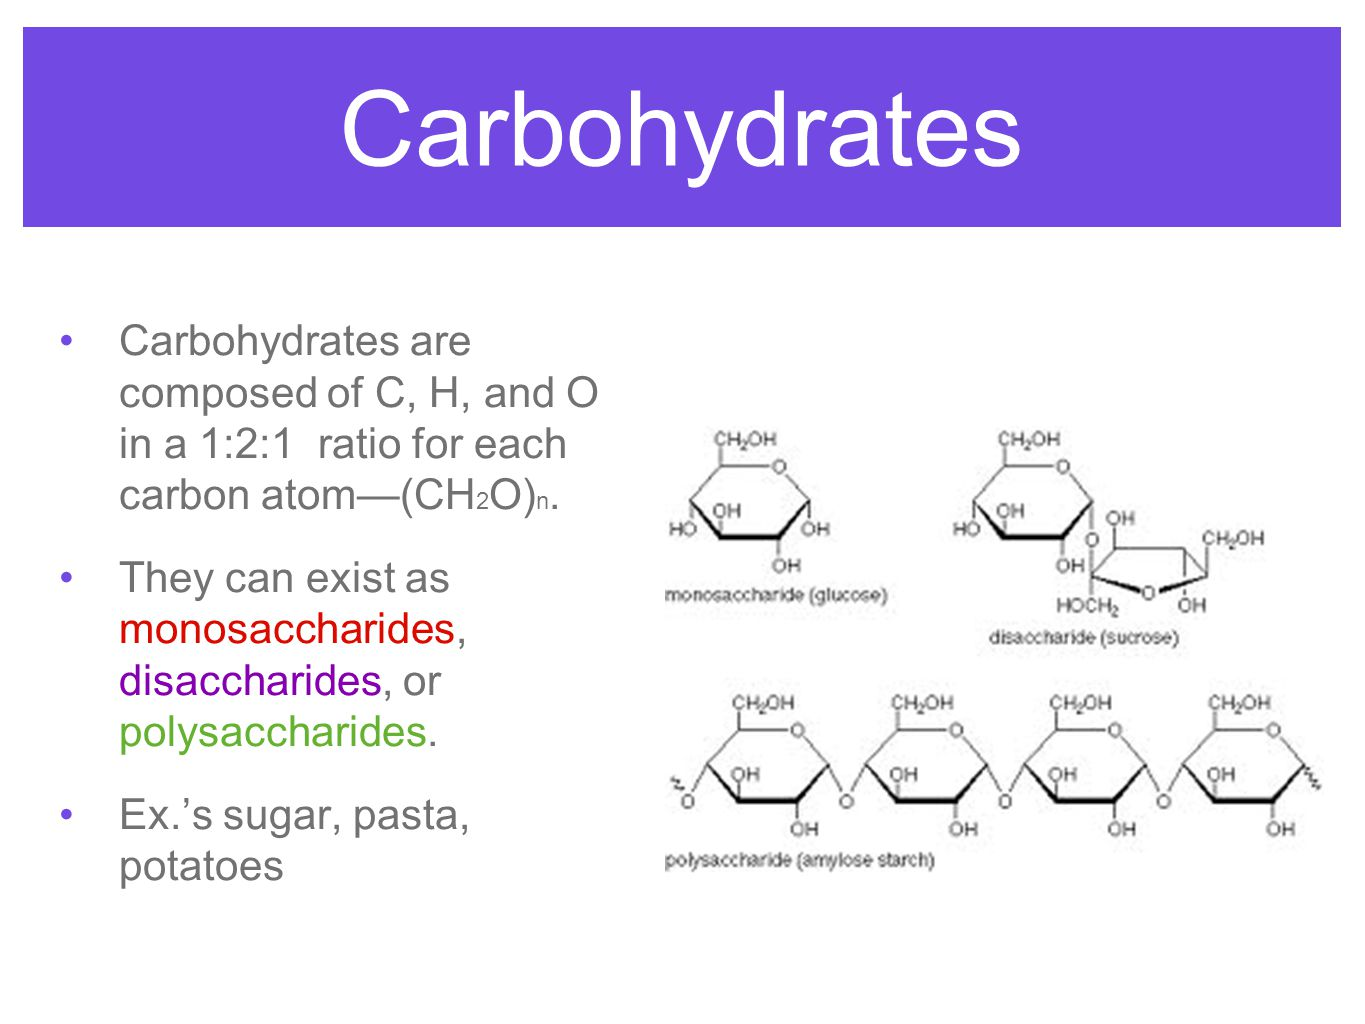 Carbohydrates Carbohydrates are composed of C, H, and O in a 1:2:1 ratio for each carbon atom—(CH2O)n.